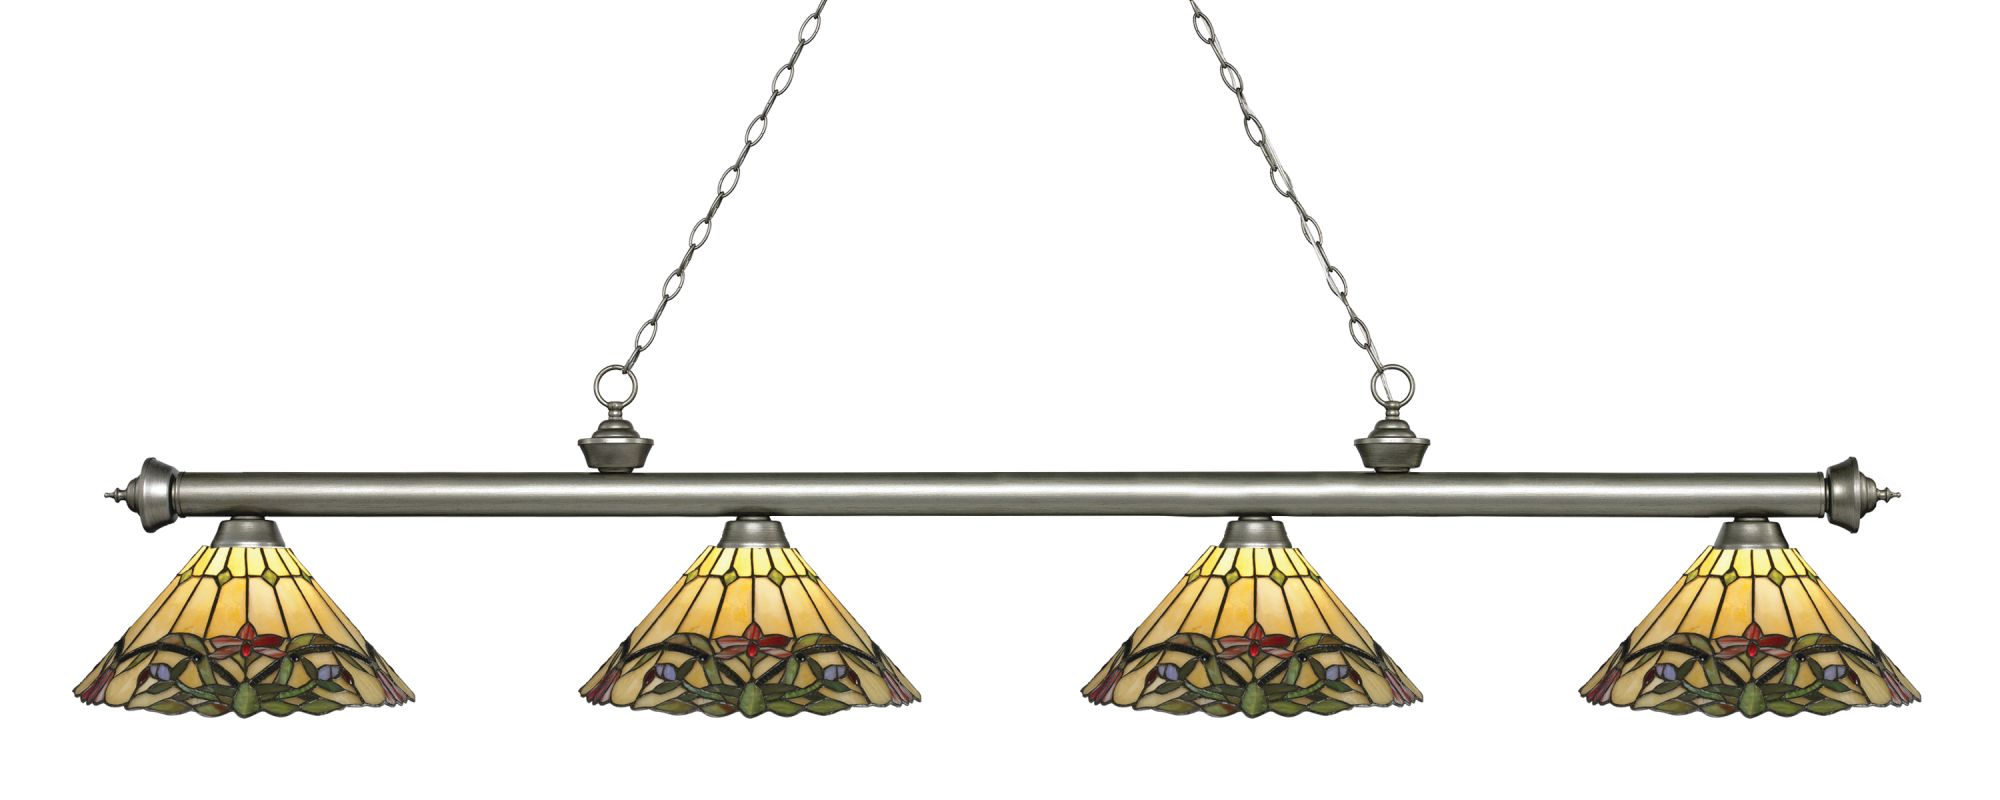 Z-Lite 200-4-Z14-49 Riviera 4 Light Island/Billiard Light with Sale $1026.00 ITEM: bci2758234 ID#:200-4AS-Z14-49 UPC: 685659059335 :